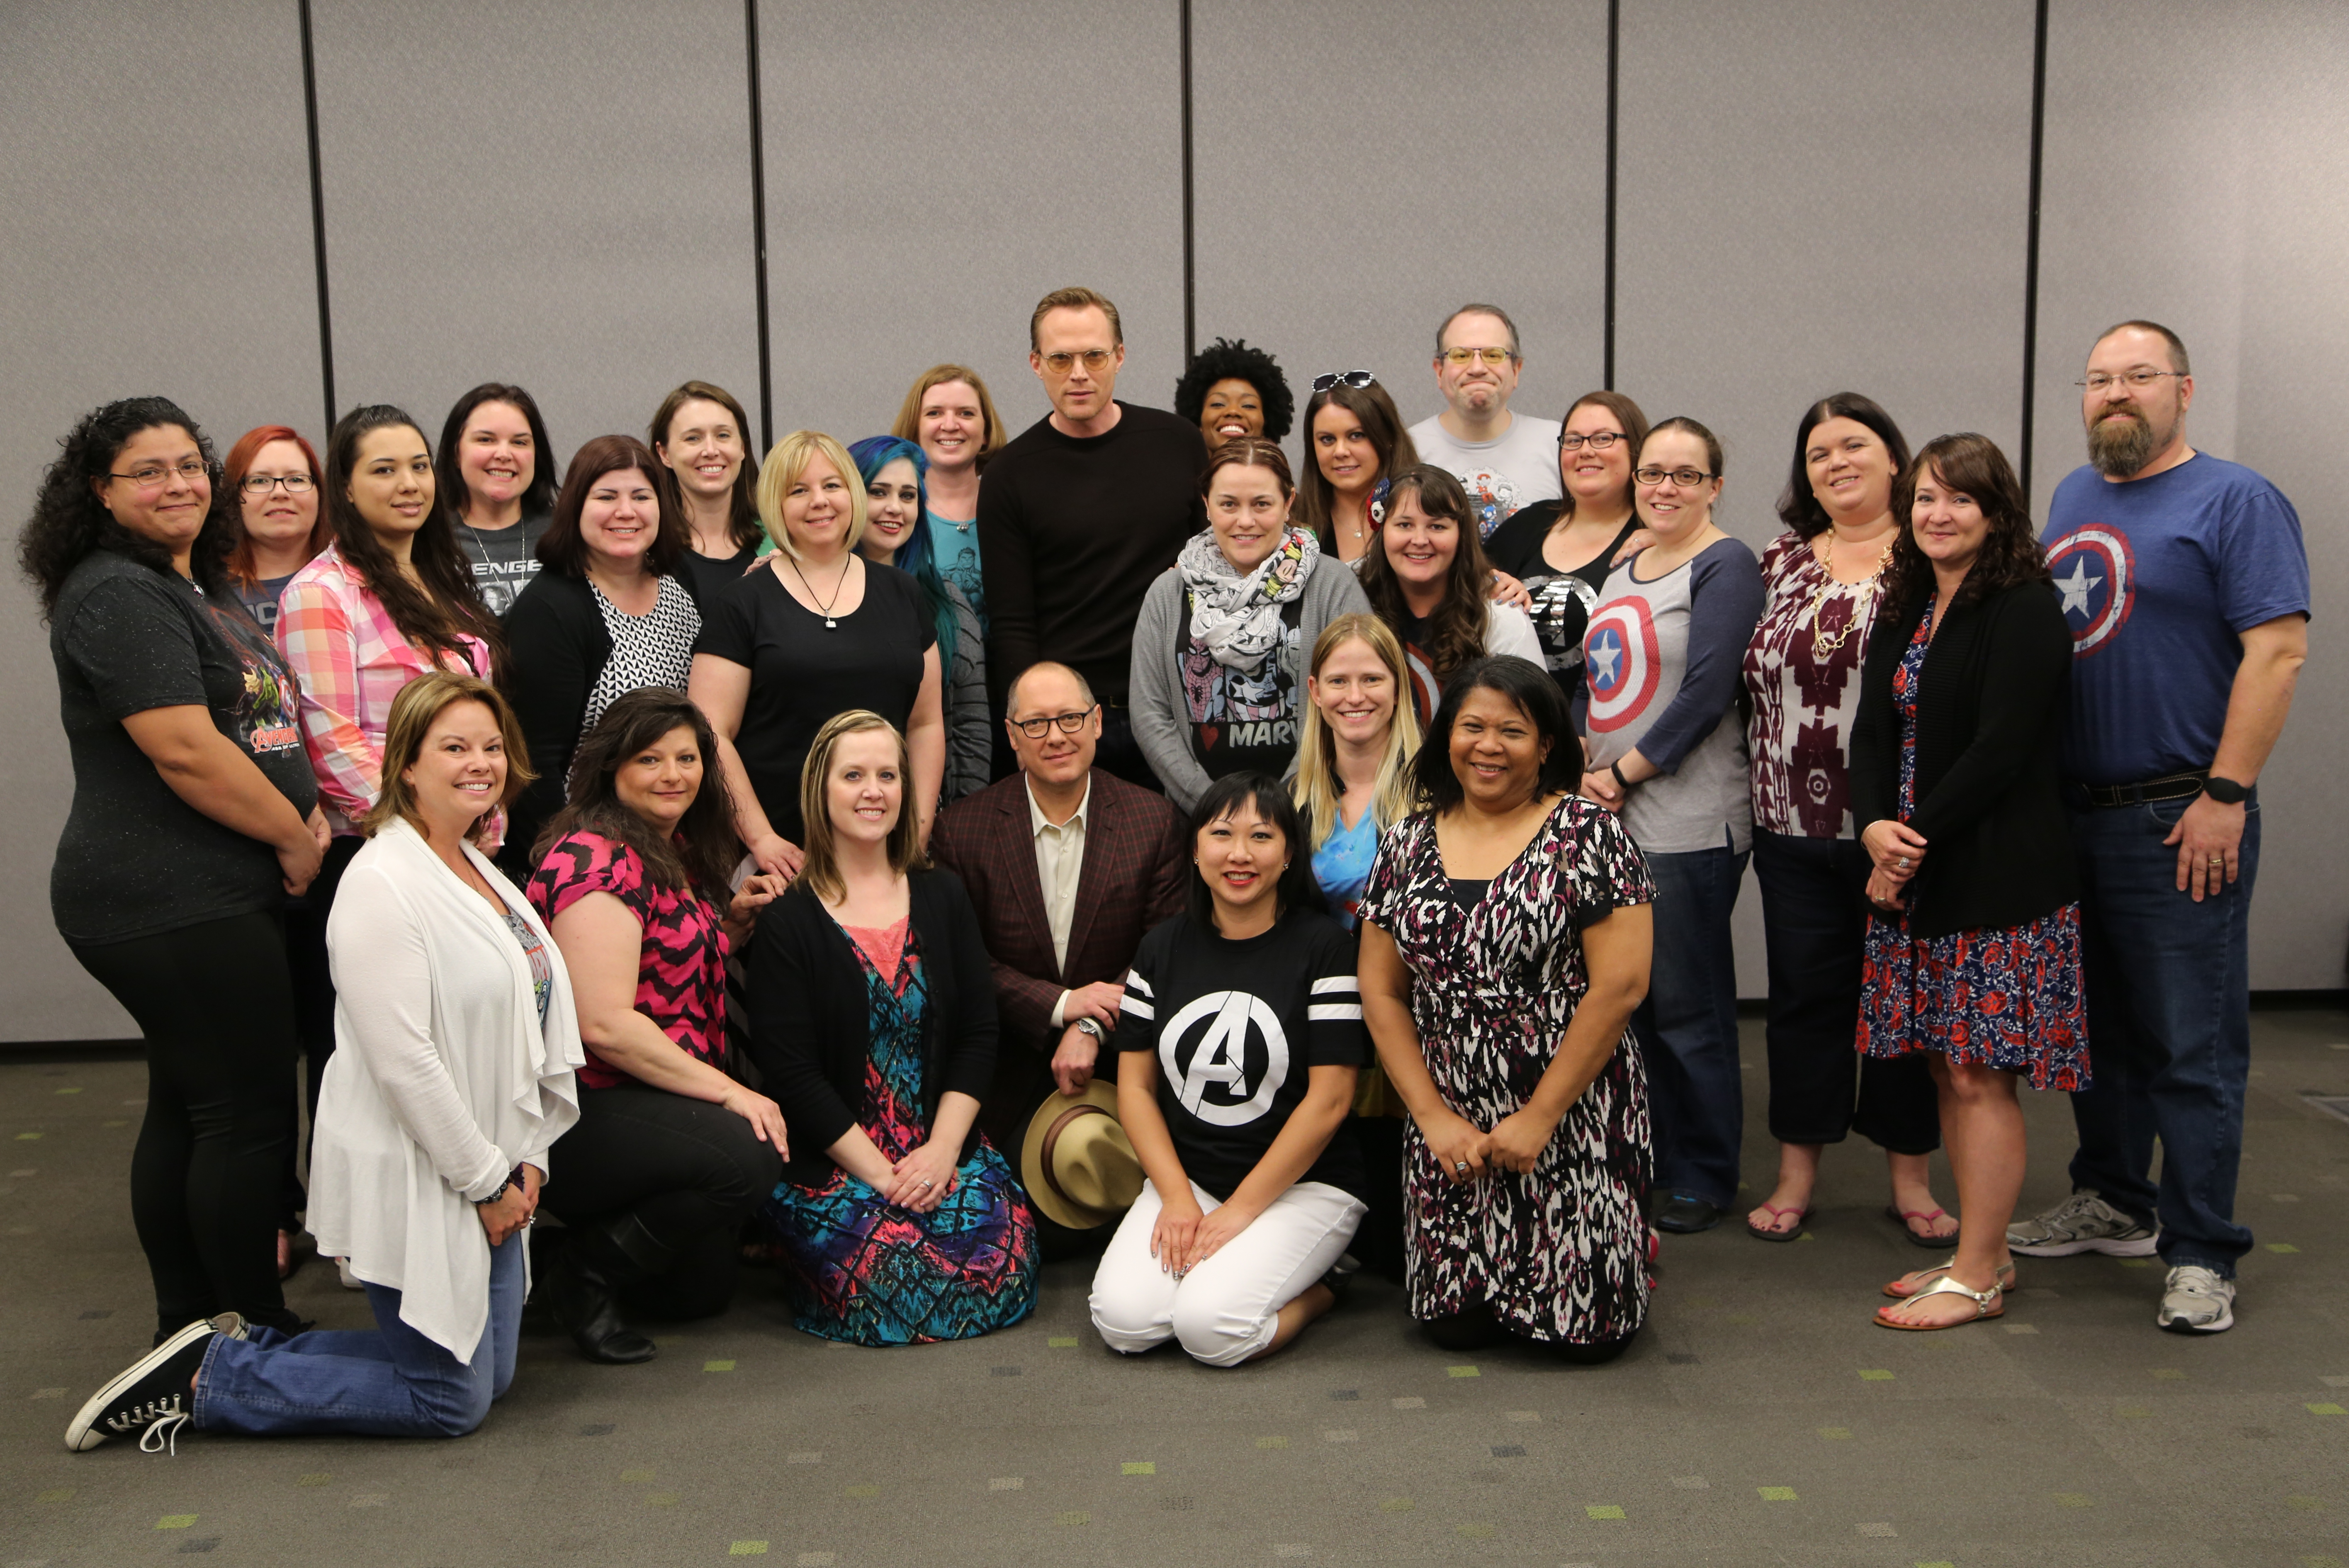 Paul and James with 25 #AvengersEvent Bloggers - Photo Credit - Disney